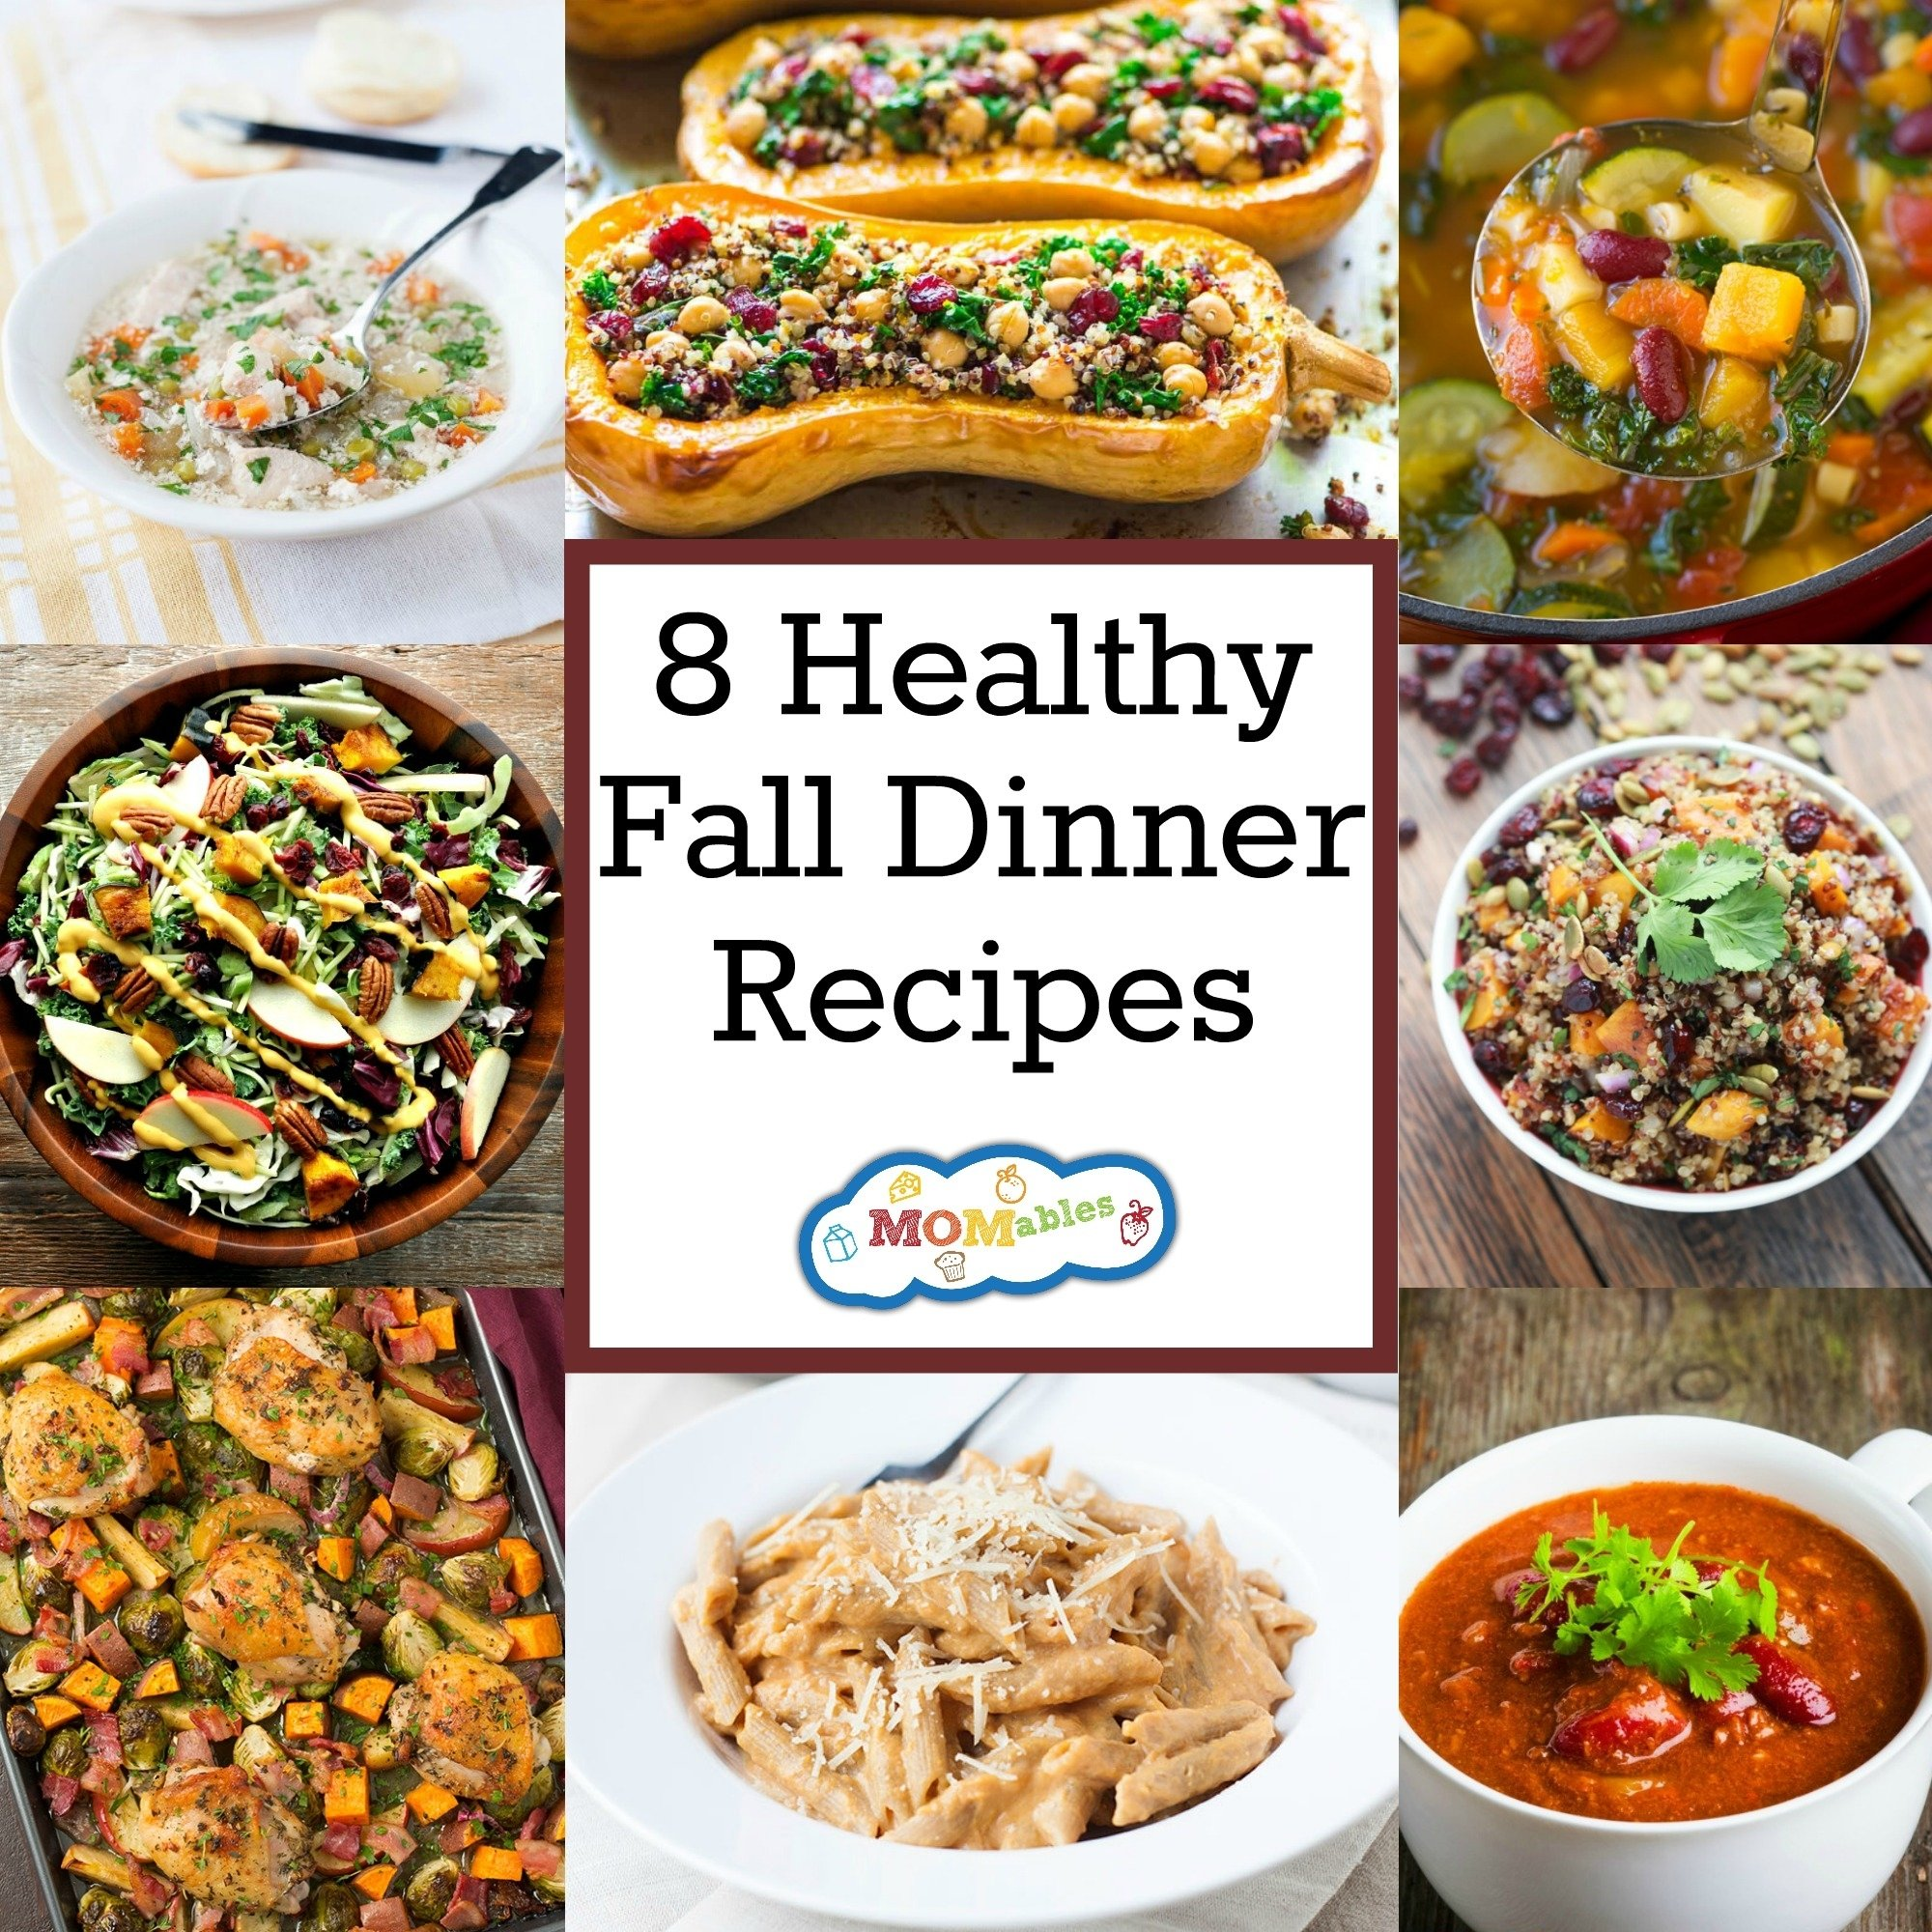 10 Trendy Lunch Ideas For A Crowd 8 healthy fall dinner recipes momables good food plan on it 3 2020